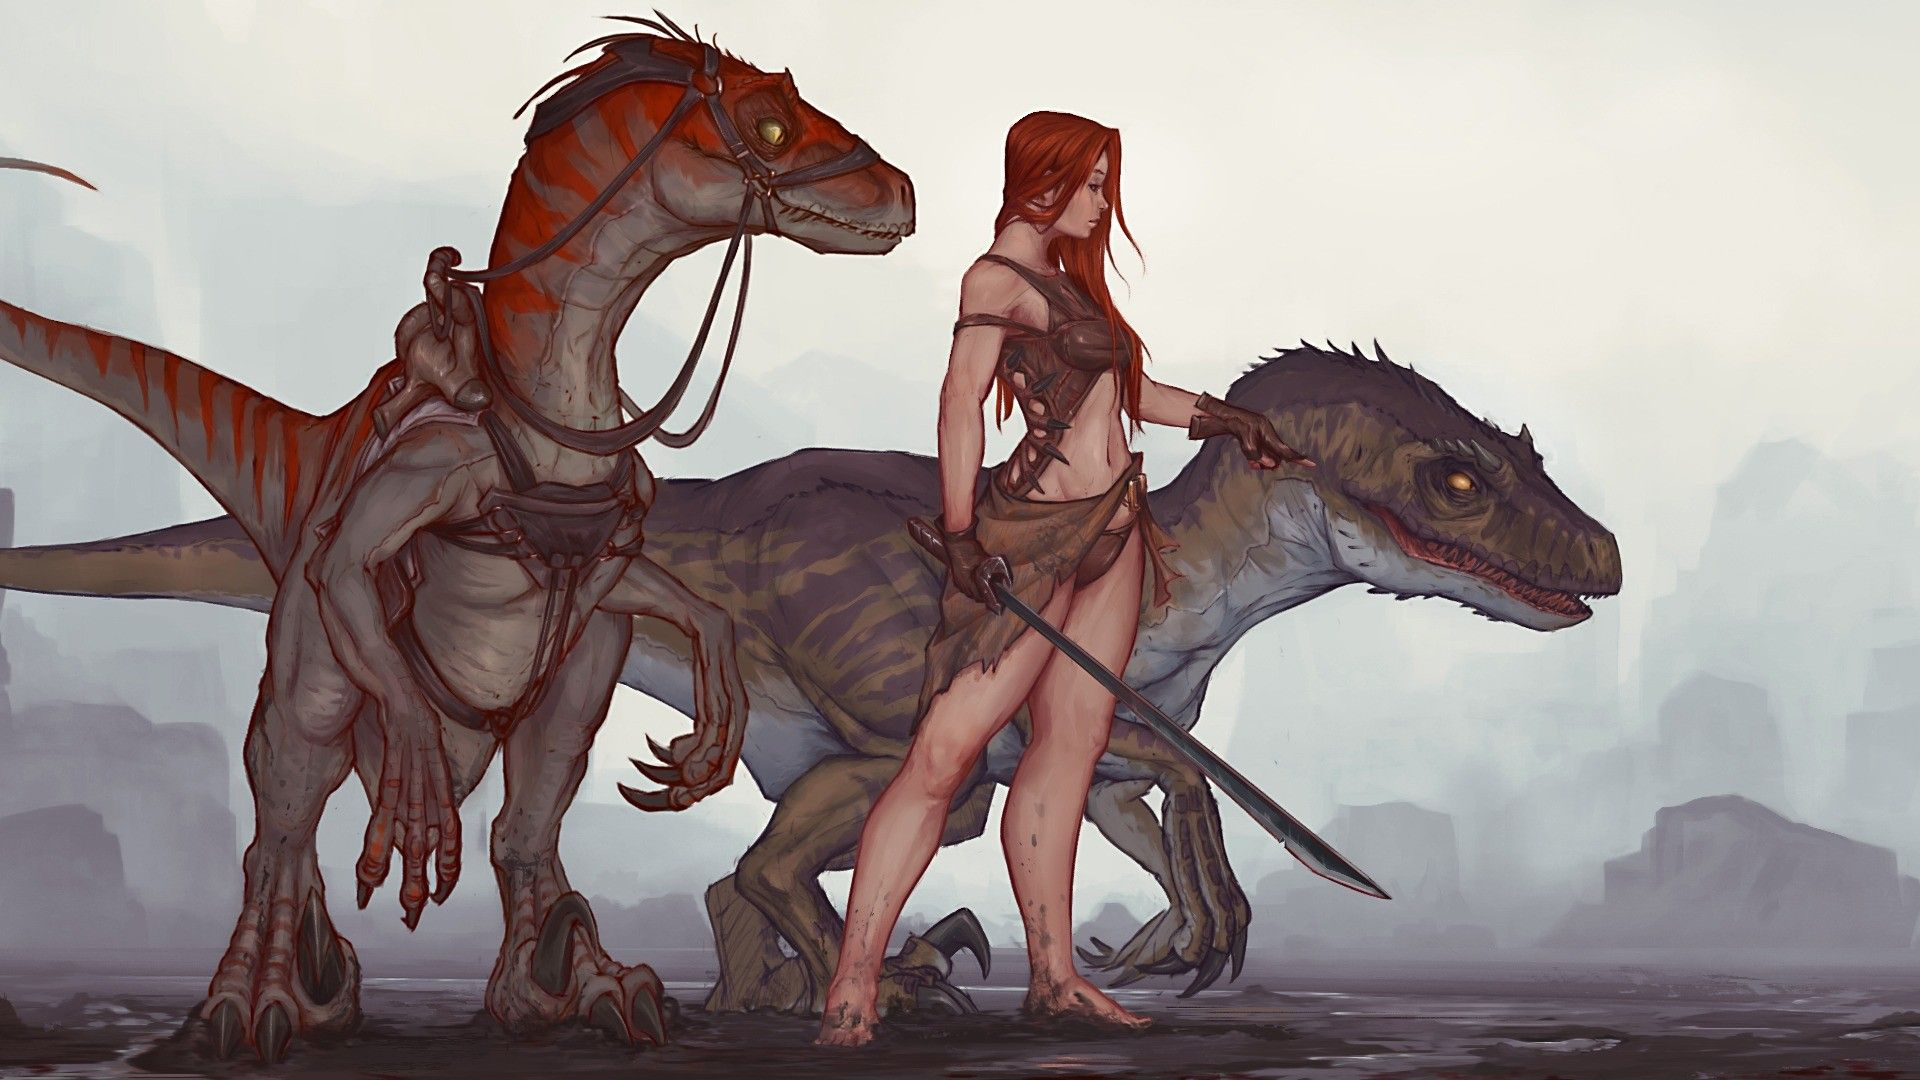 Woman with raptors (inspired by Ark: Survival Evolved)